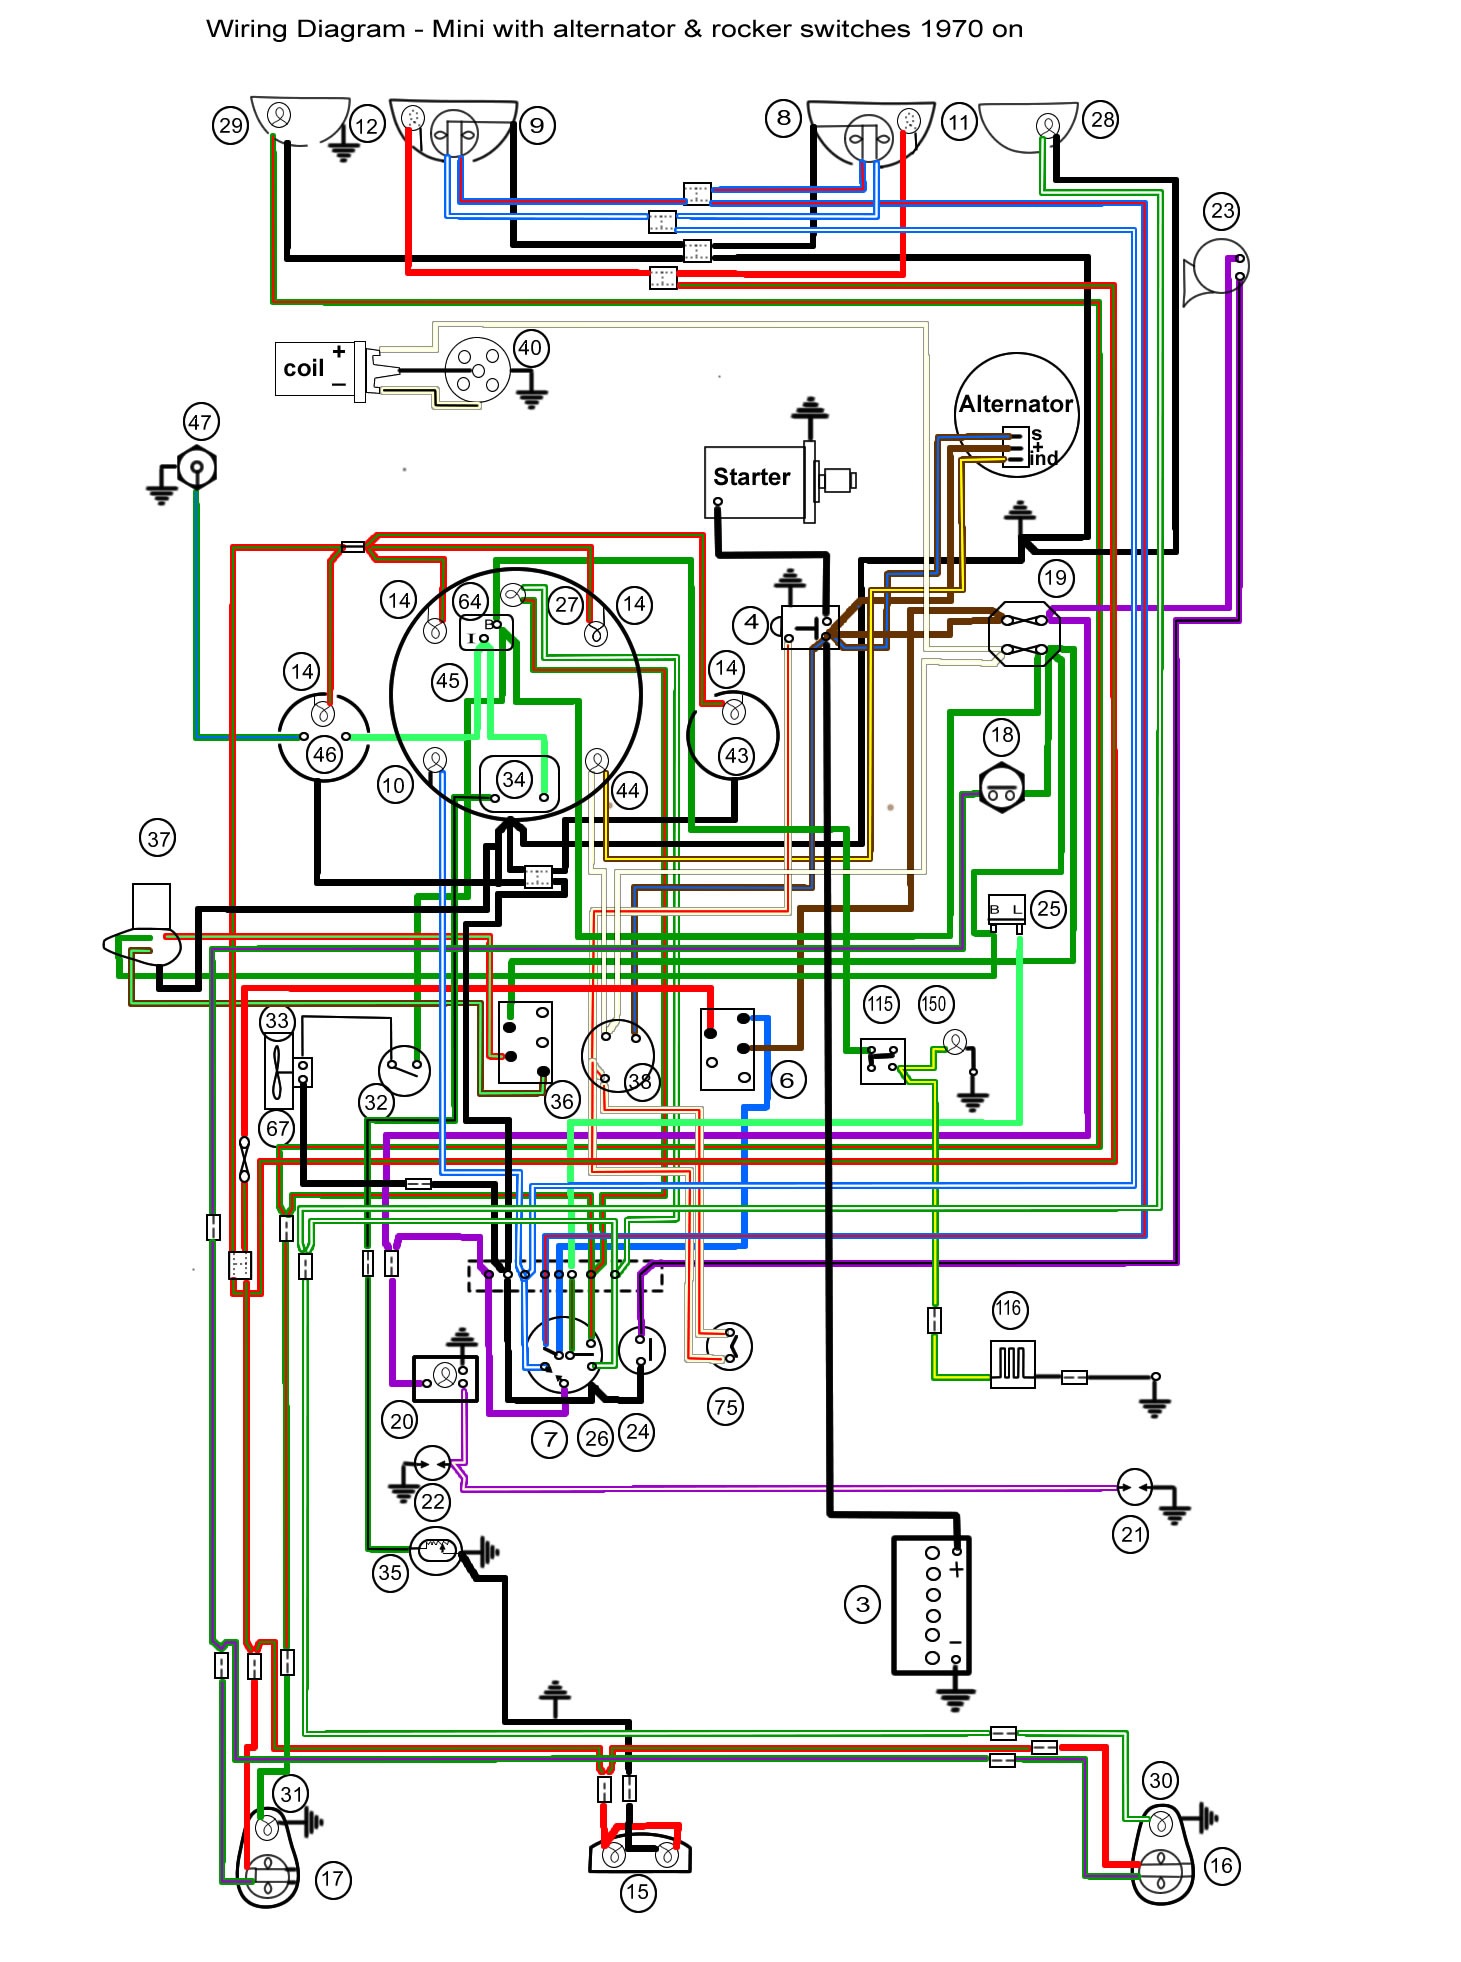 Electrical ColourWiringDiagram datsun 510 alternator wiring diagram porsche 911 alternator wiring Ford Alternator Wiring Diagram at soozxer.org